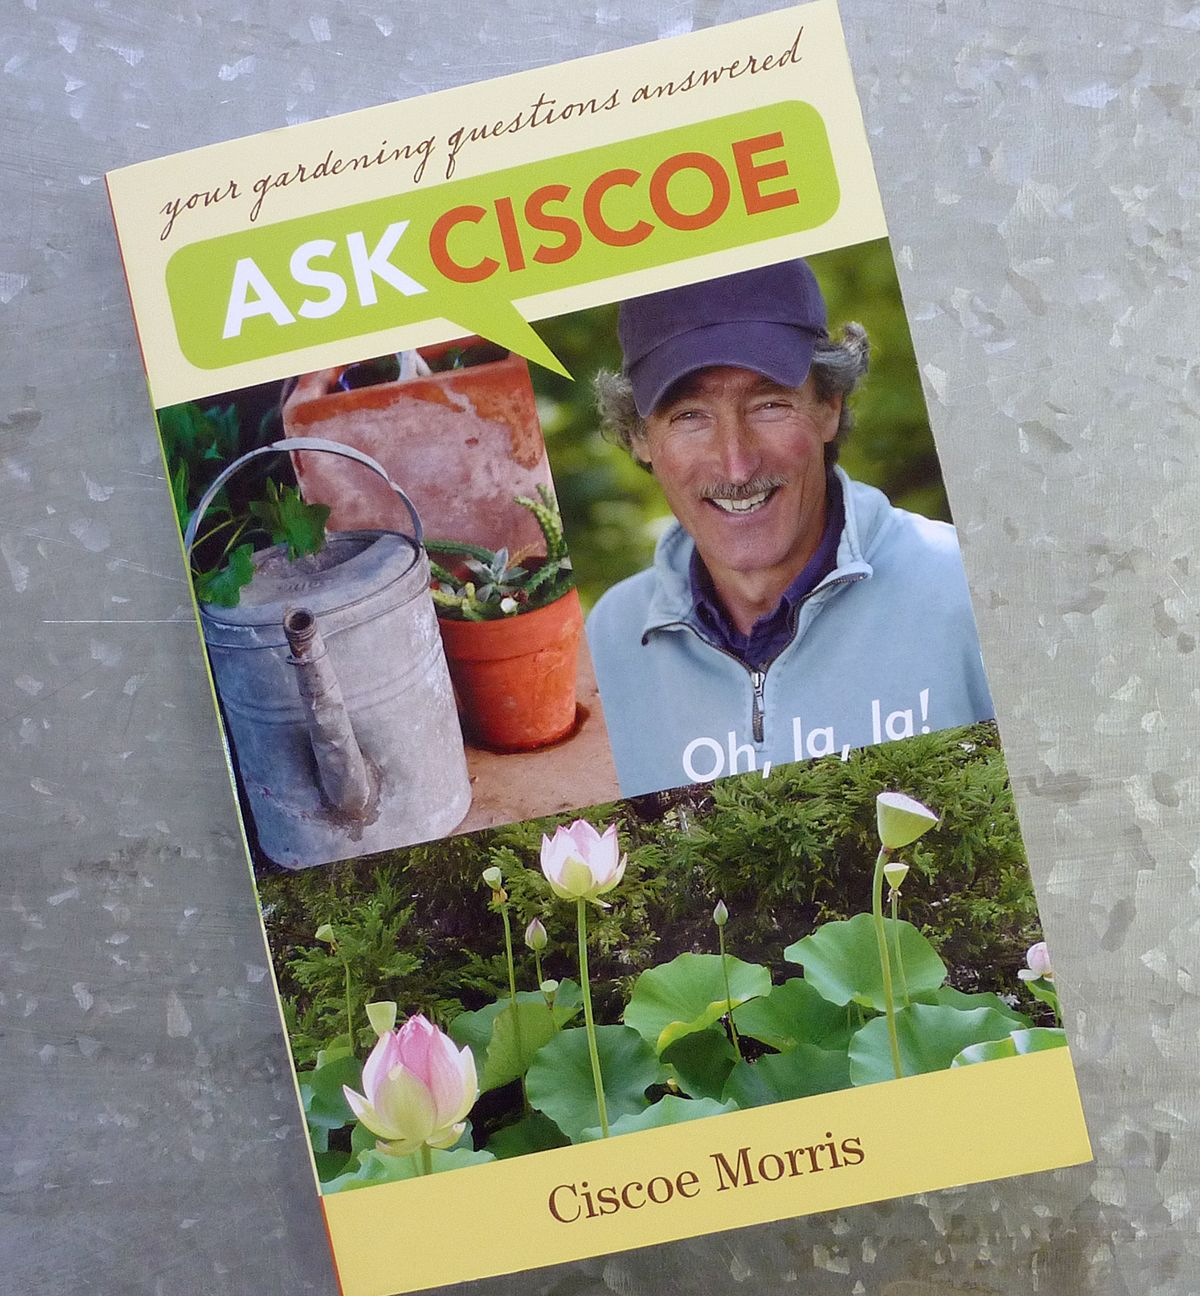 3506a7a55a1e27f6506741bb3cb970b8 - Ask Ciscoe Oh La La Your Gardening Questions Answered